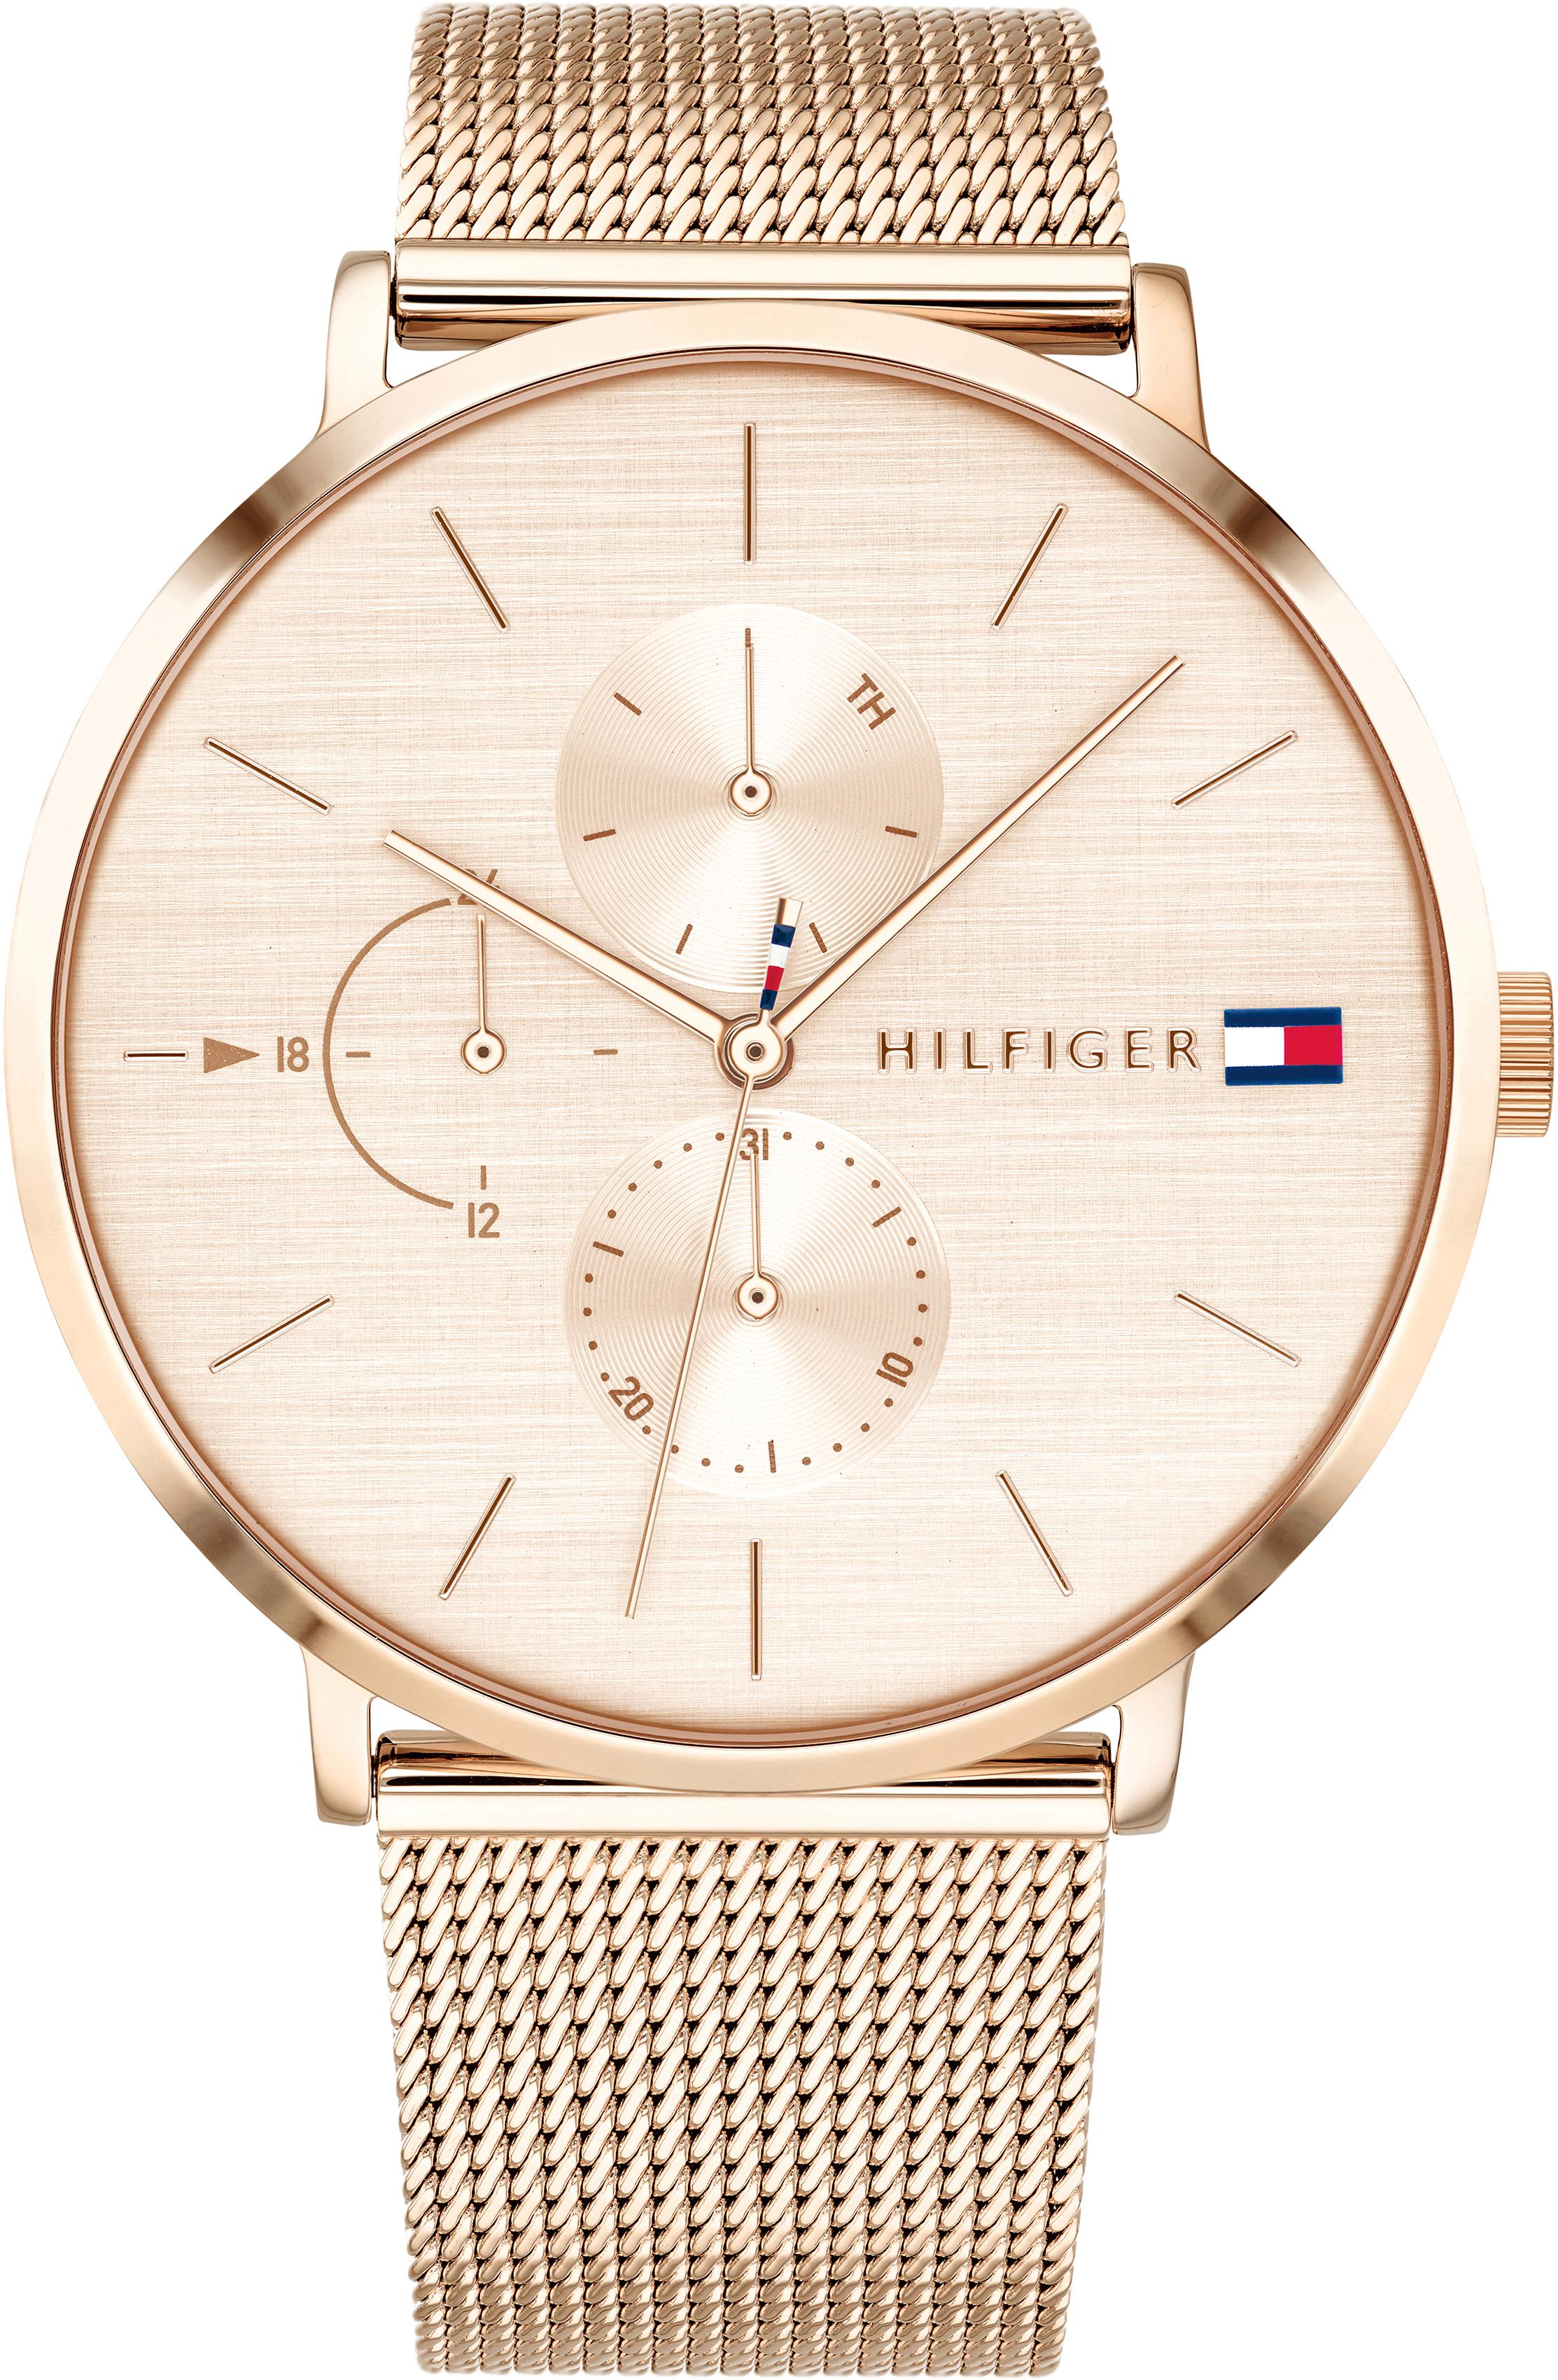 TOMMY HILFIGER Multifunktionsuhr CASUAL 1781944 | Uhren > Multifunktionsuhren | Tommy Hilfiger